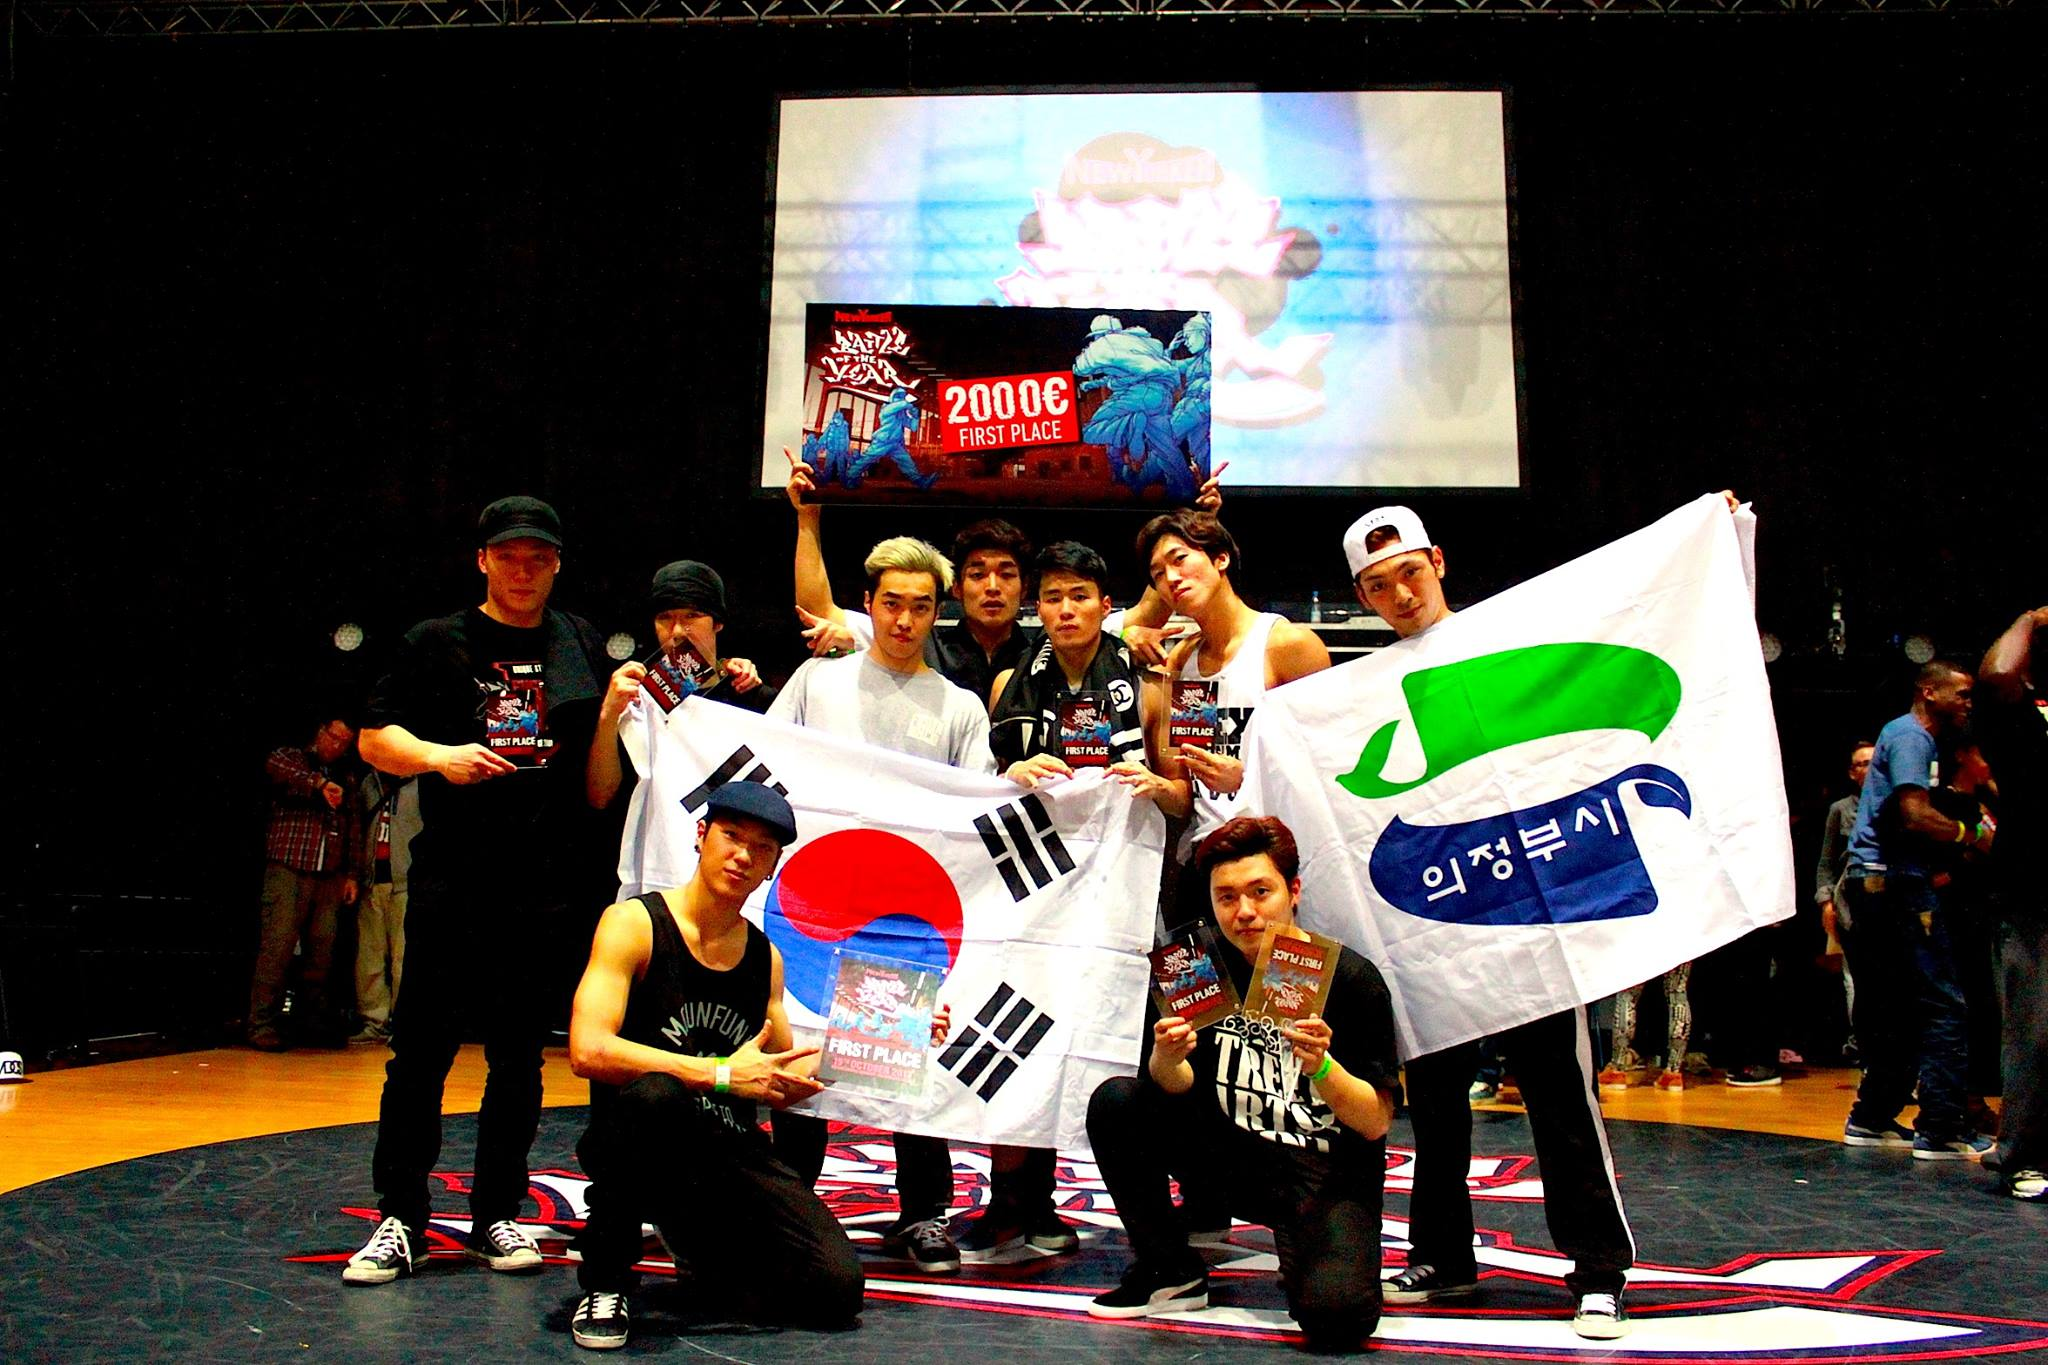 B-Boy Krops who is on the bottom right is holding two 1st place trophies